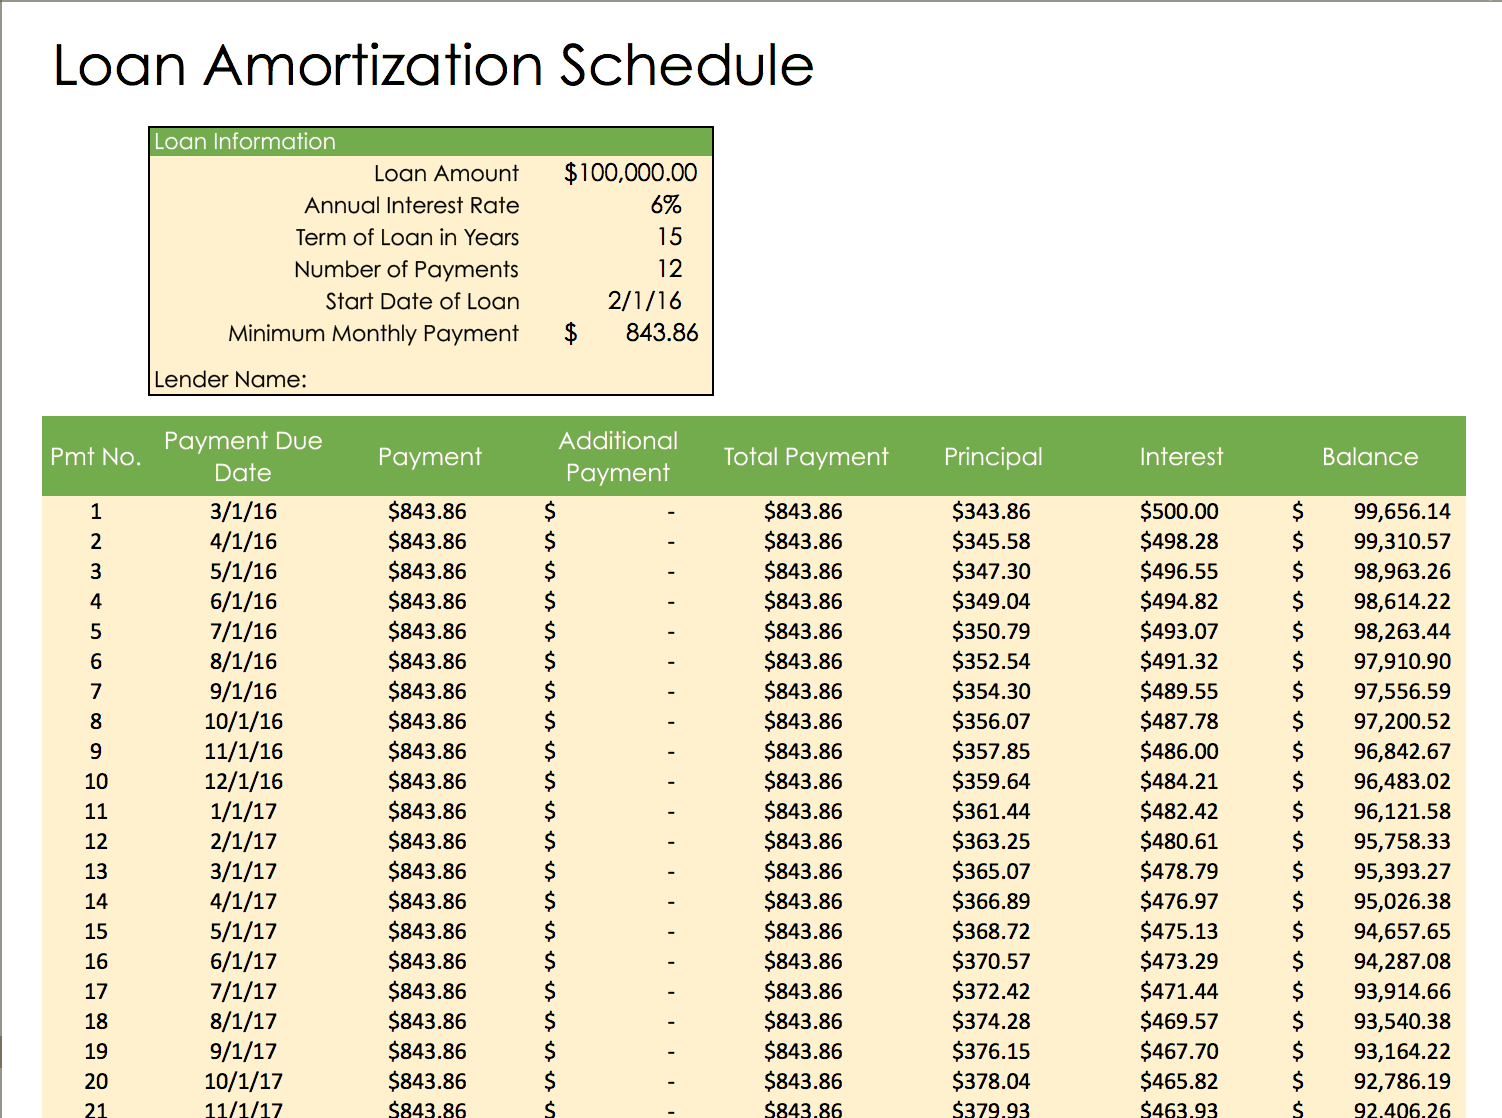 Free weekly schedule templates for excel smartsheet loan amortization schedule template pronofoot35fo Image collections